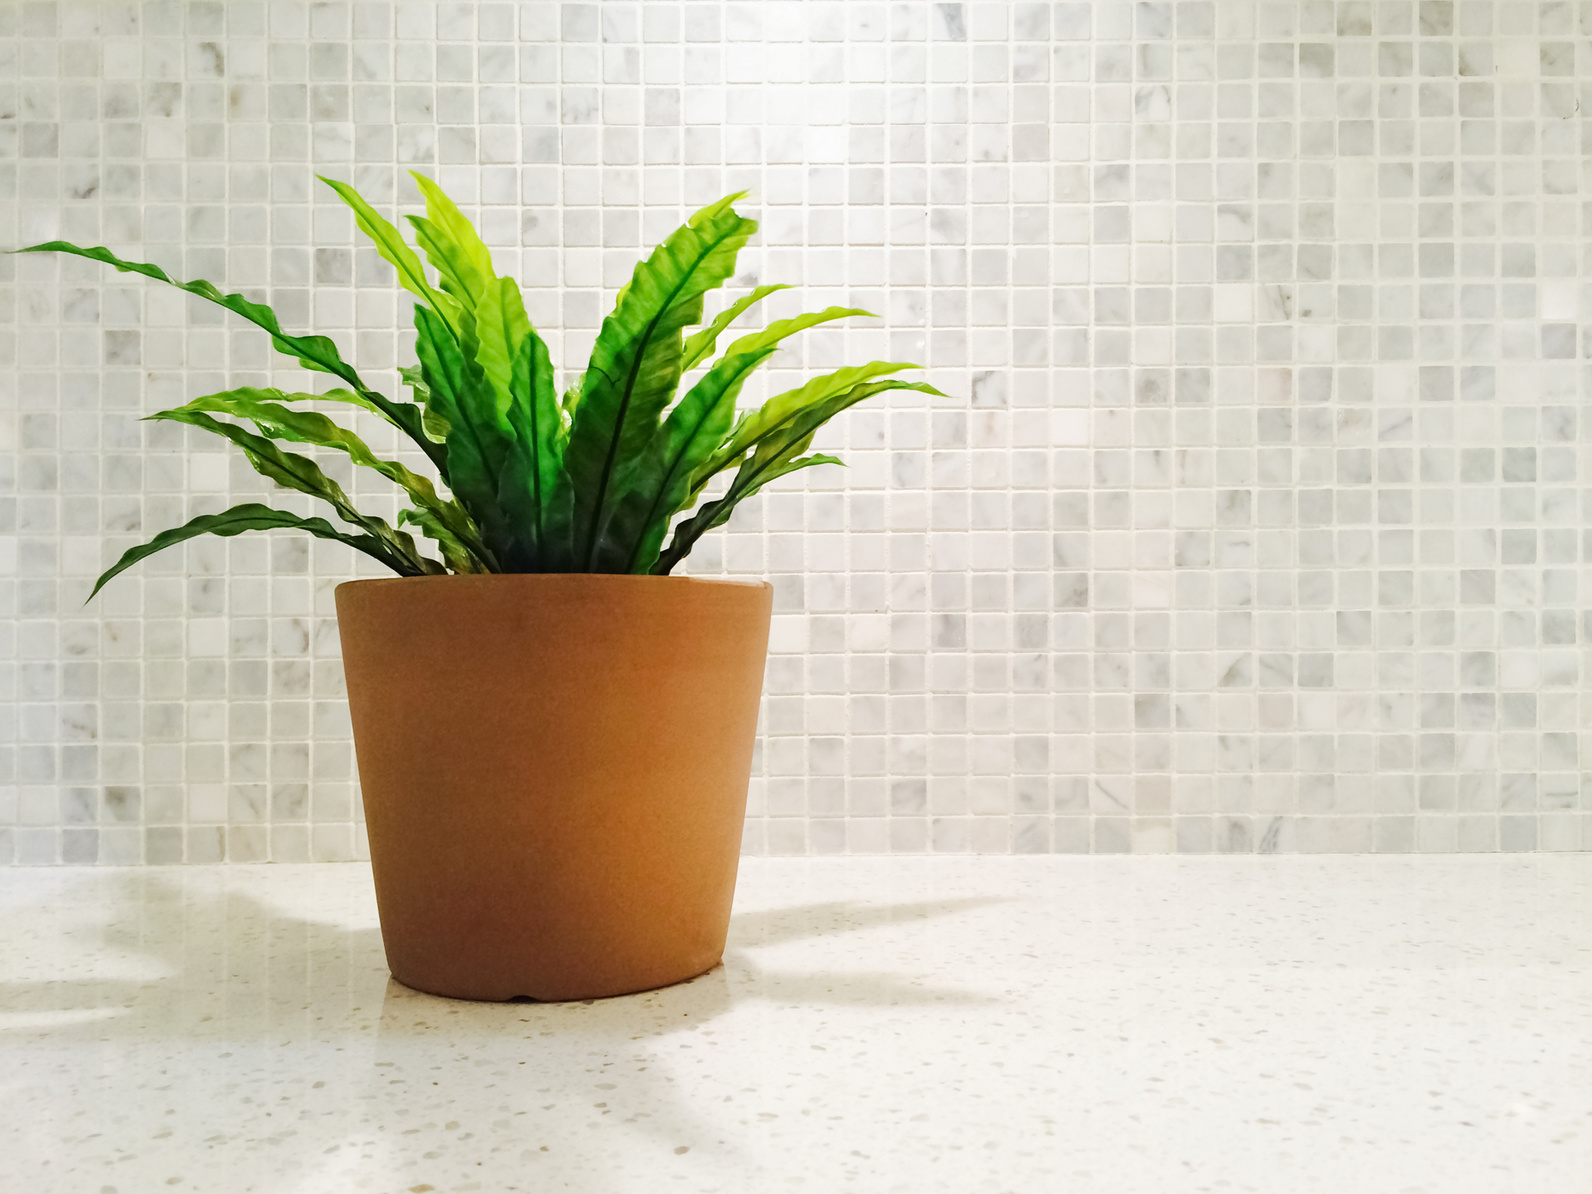 Plants For Kitchen To Decorate It: How To Decorate With Kitchen Plants